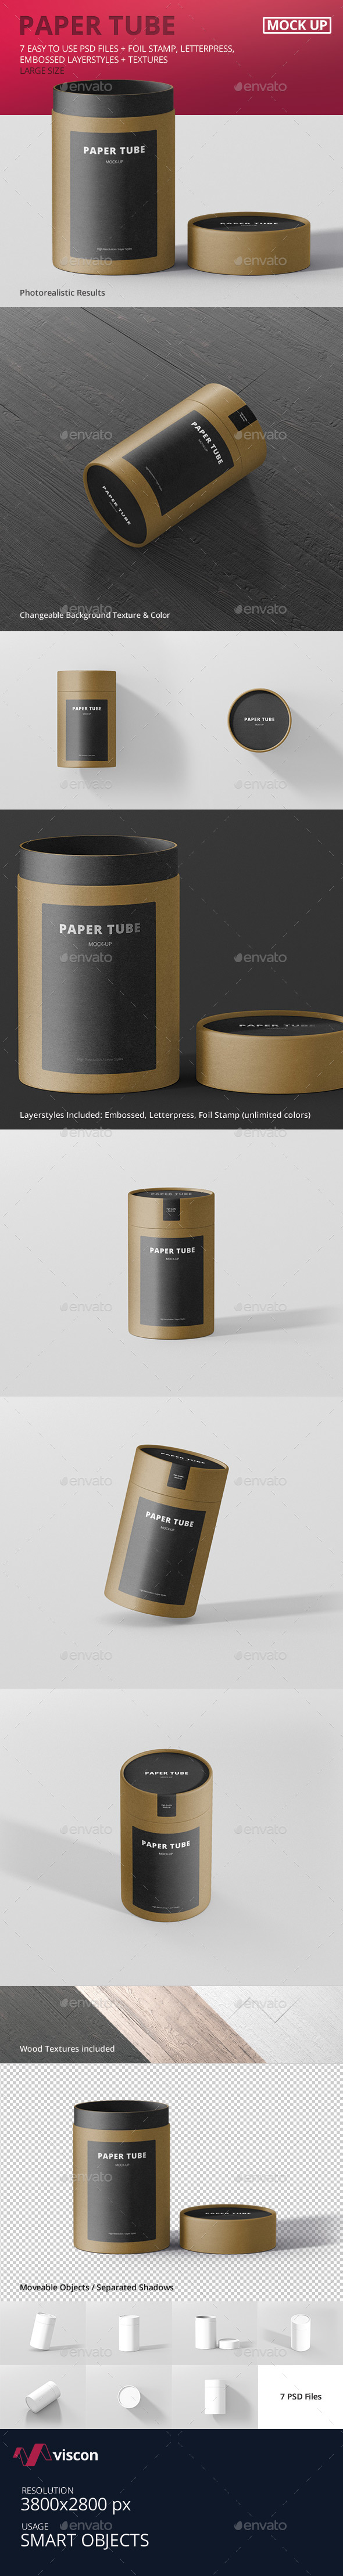 Paper Tube Packaging Mock-Up - Large